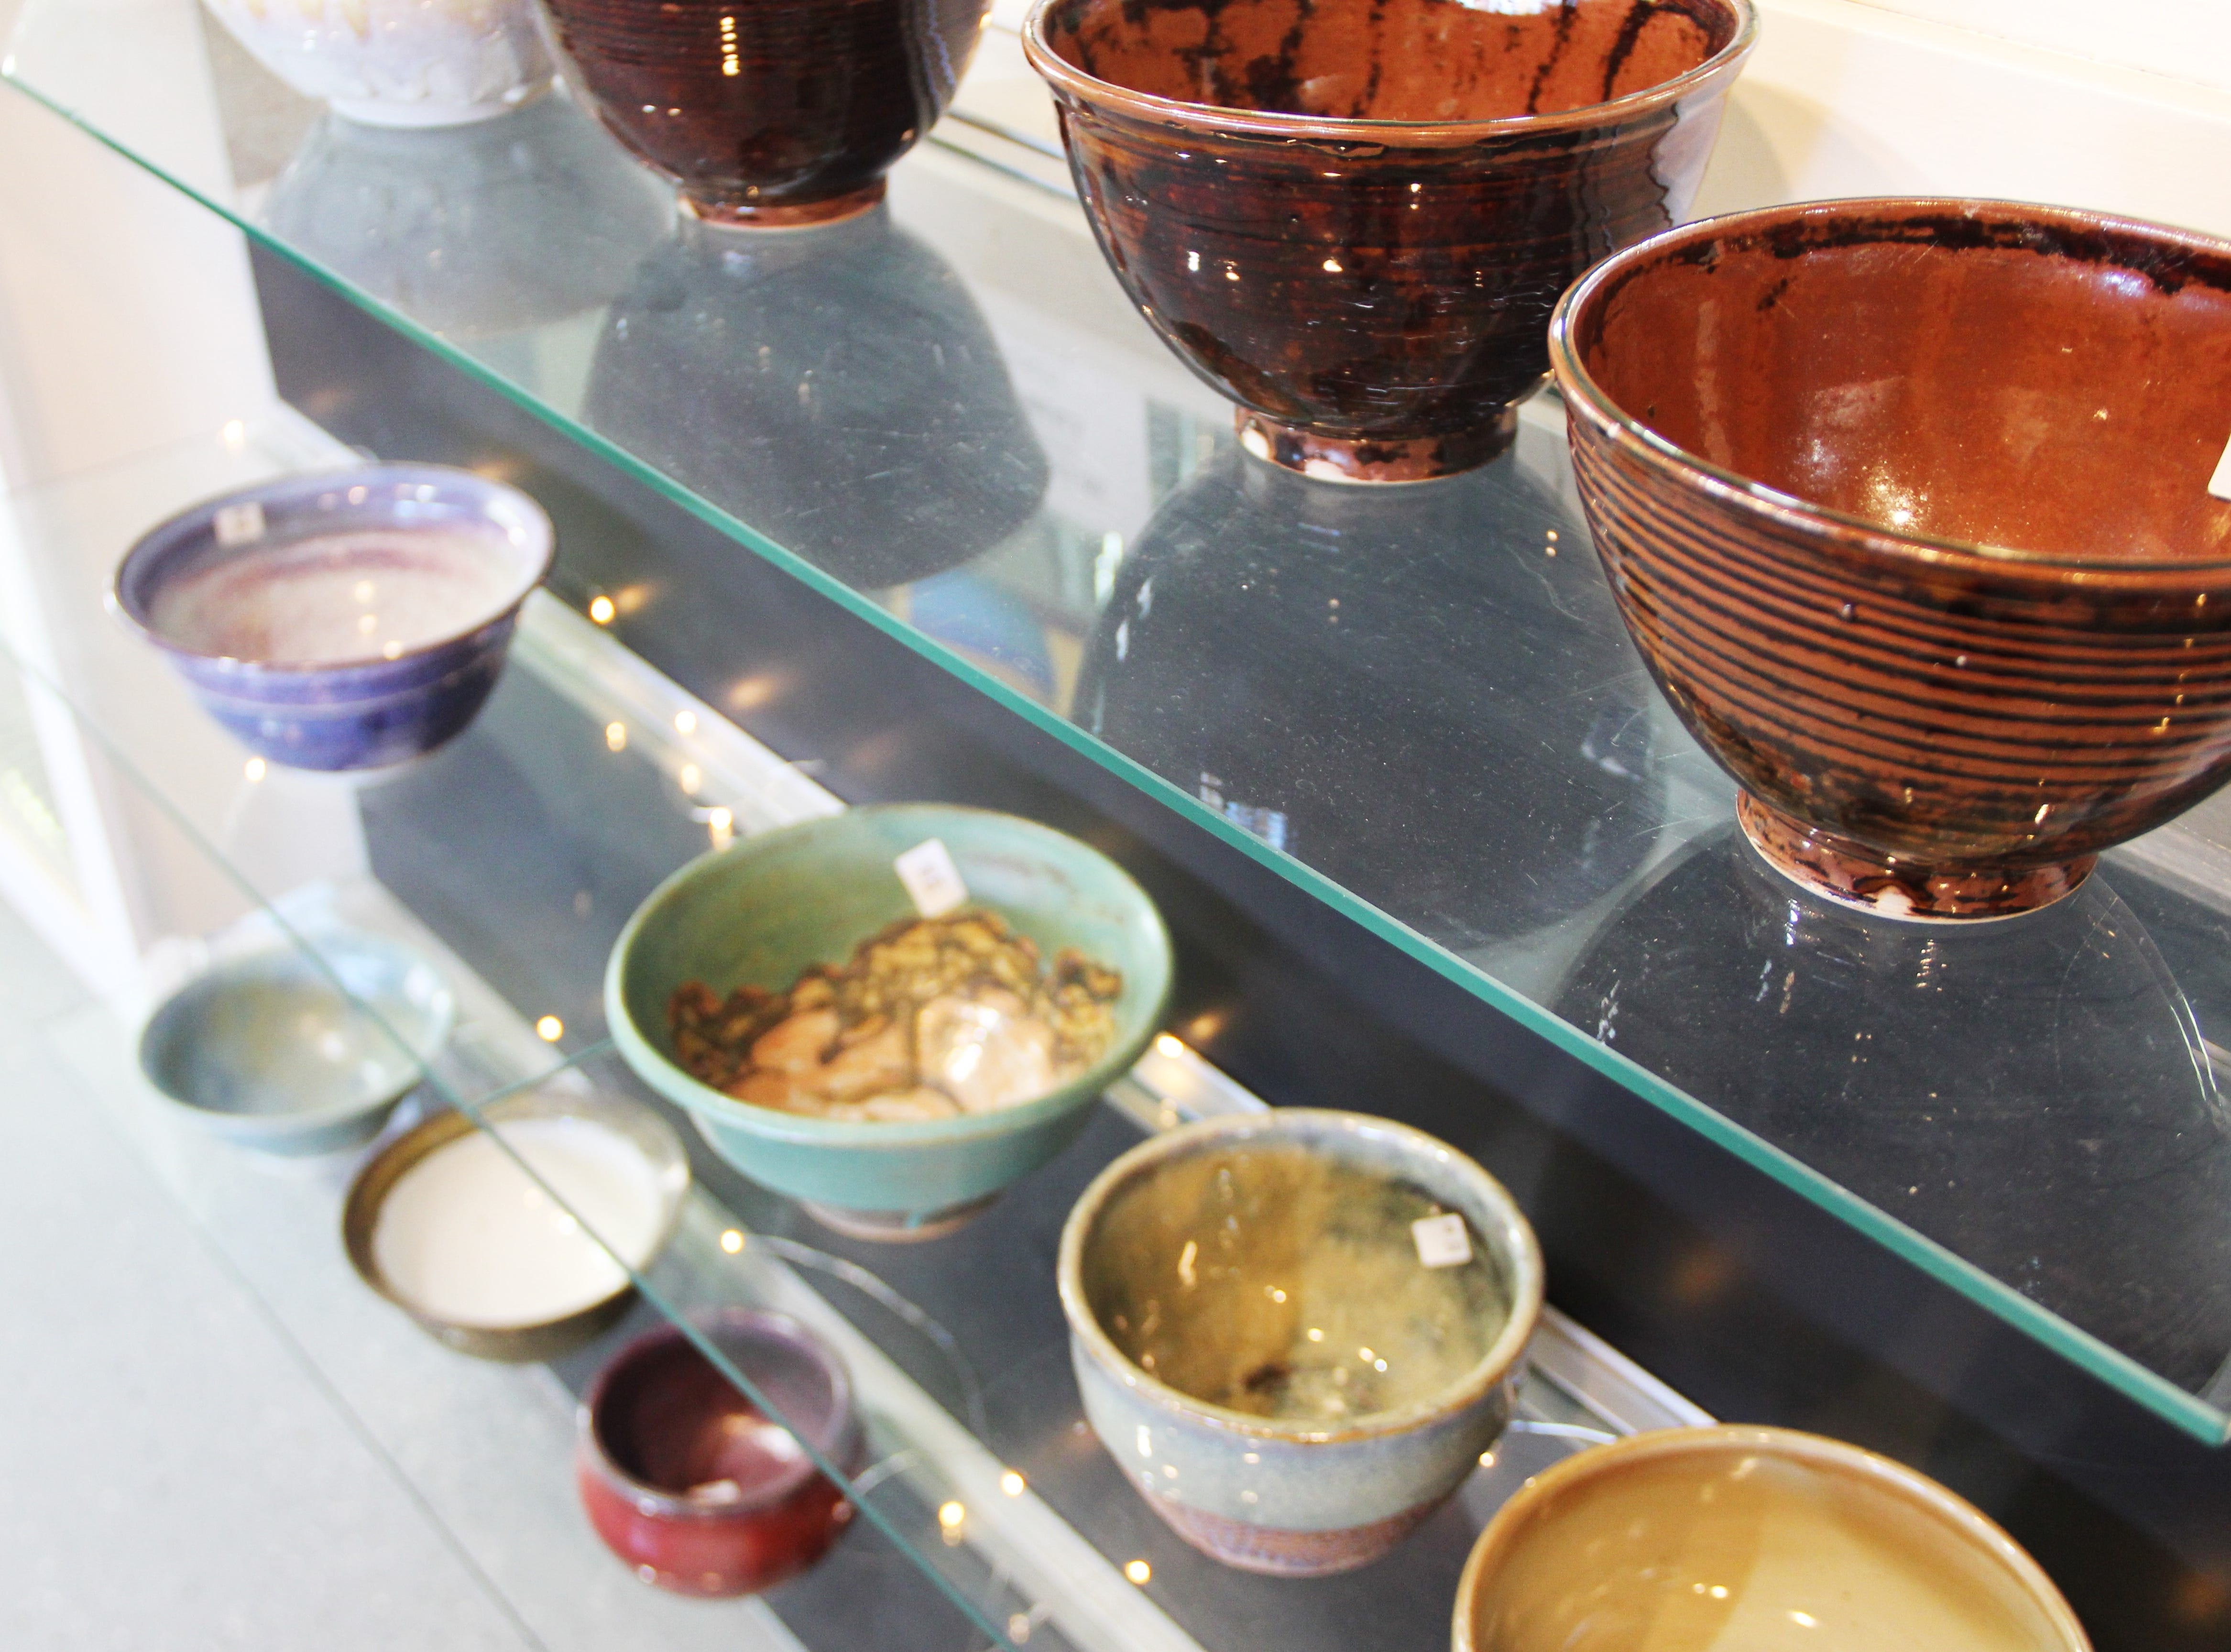 Rows of bowls at the Willamette Art Center's Empty Bowls fundraiser on Saturday, Nov. 17. Each bowl was created by volunteers.